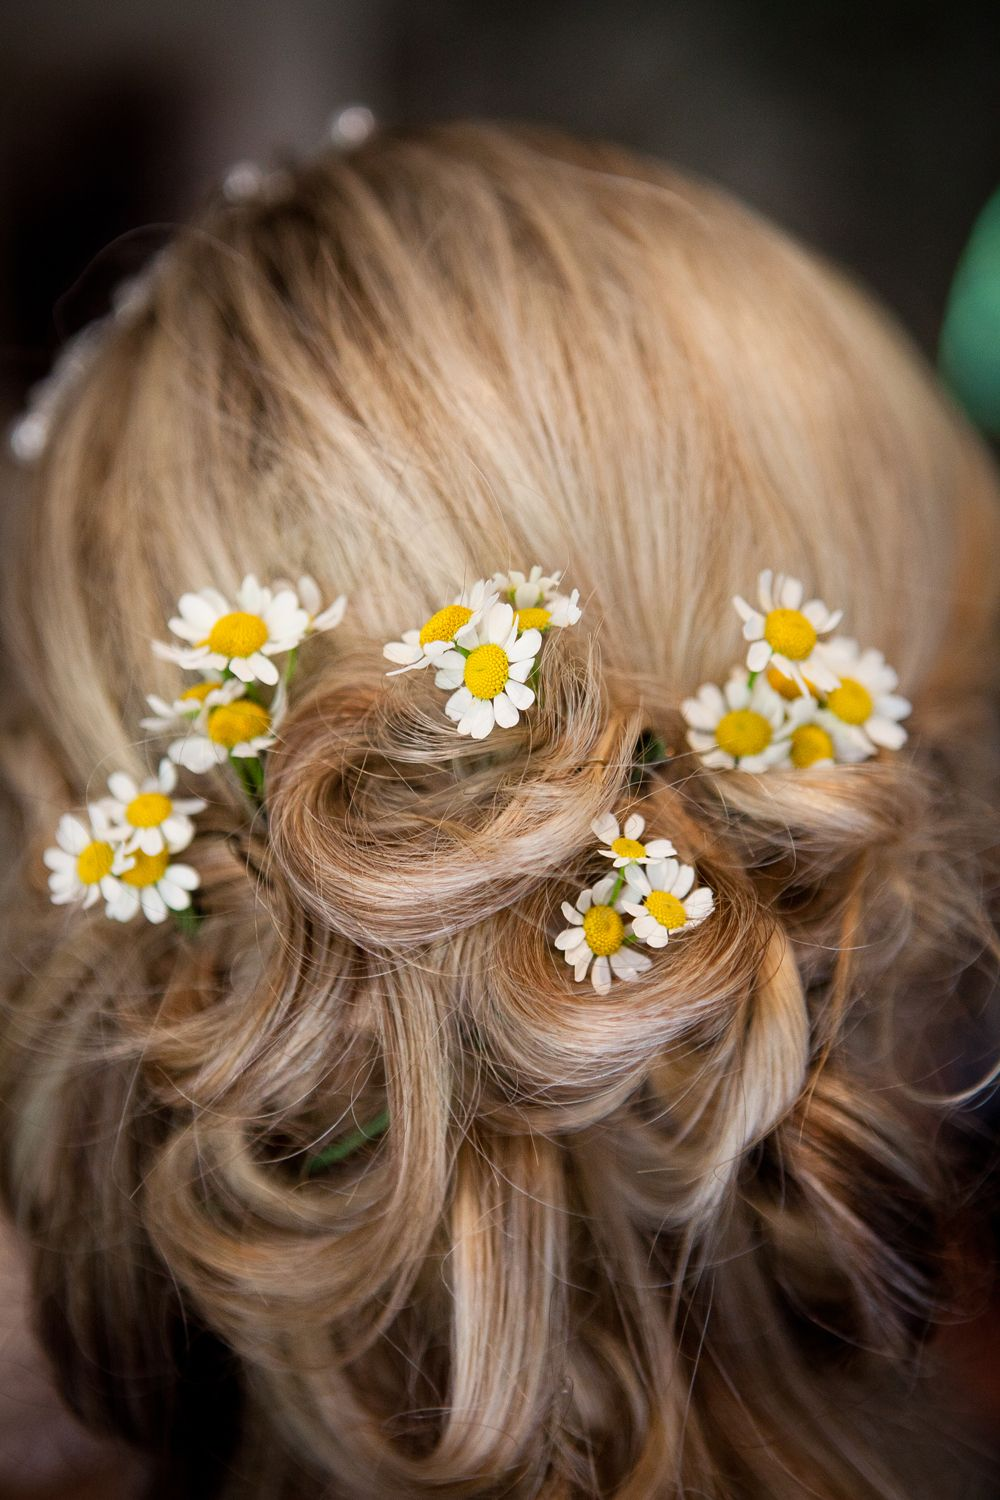 These are exactly the kind of flowers i want in my hair zs